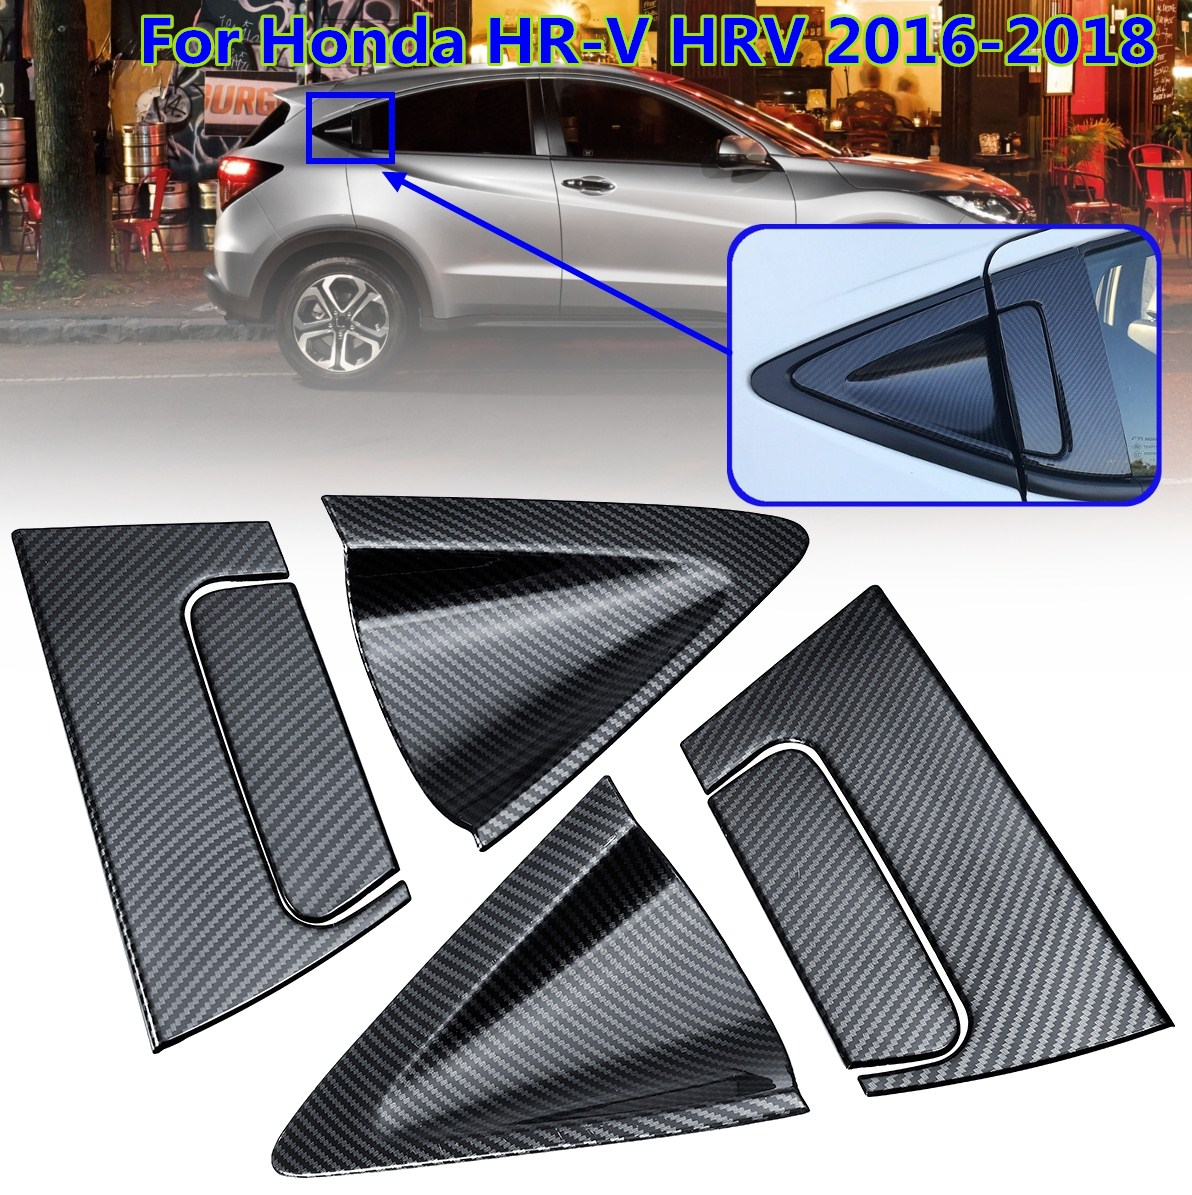 12Pcs Carbon Fiber Style Door Handle Cover Bowl Trim For Honda Civic 2016-2018